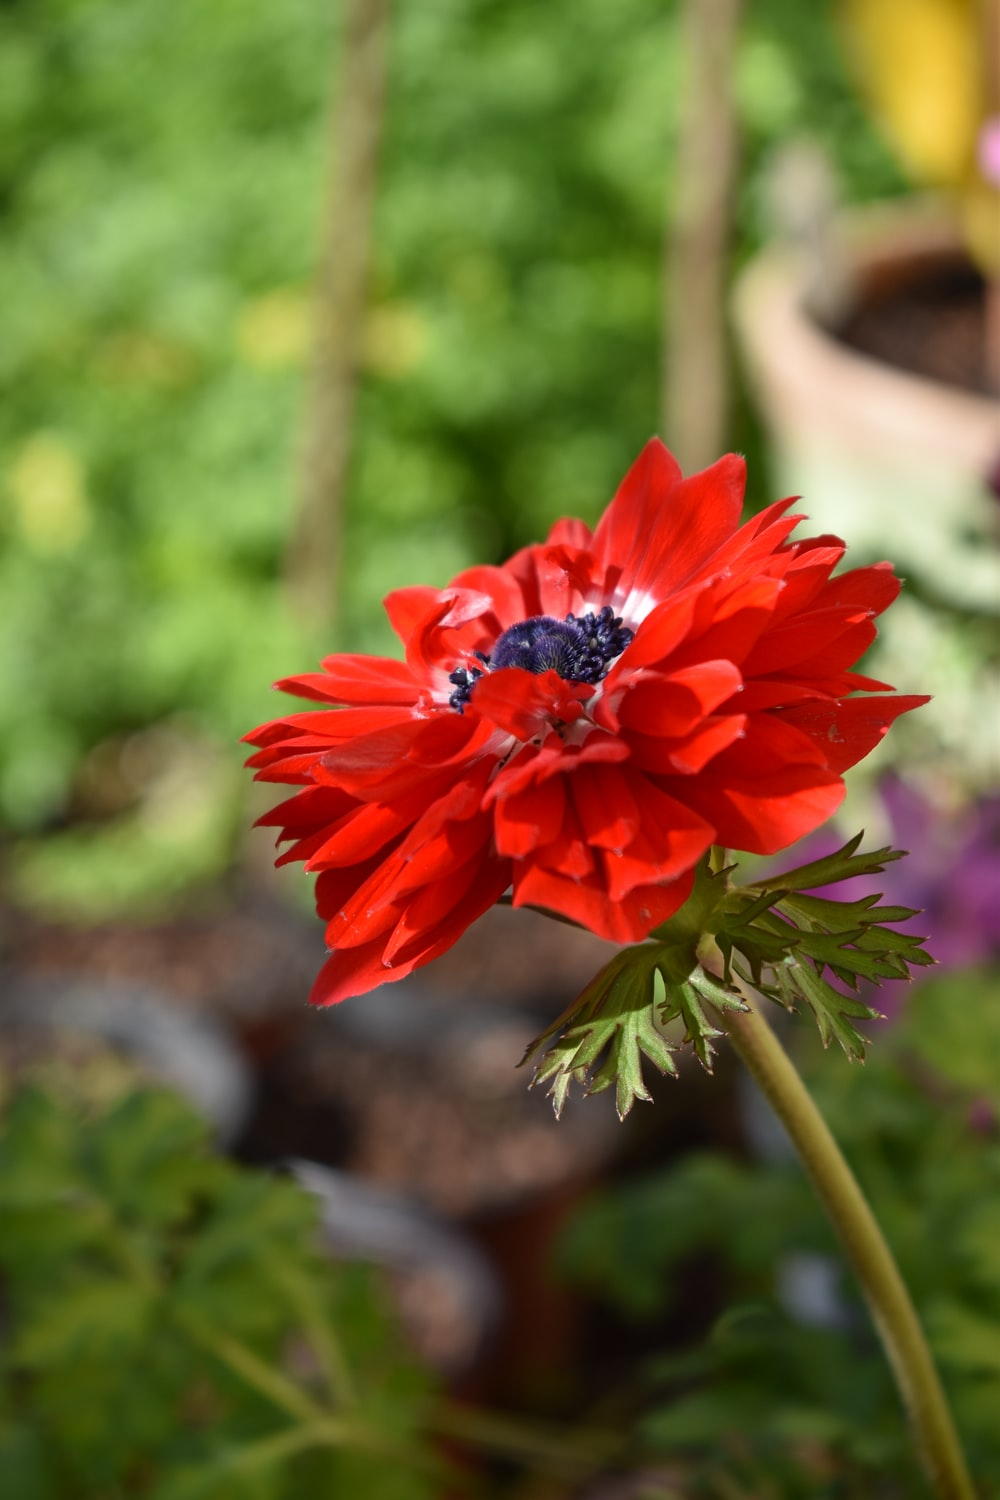 red anemone flower in bloom during daytime